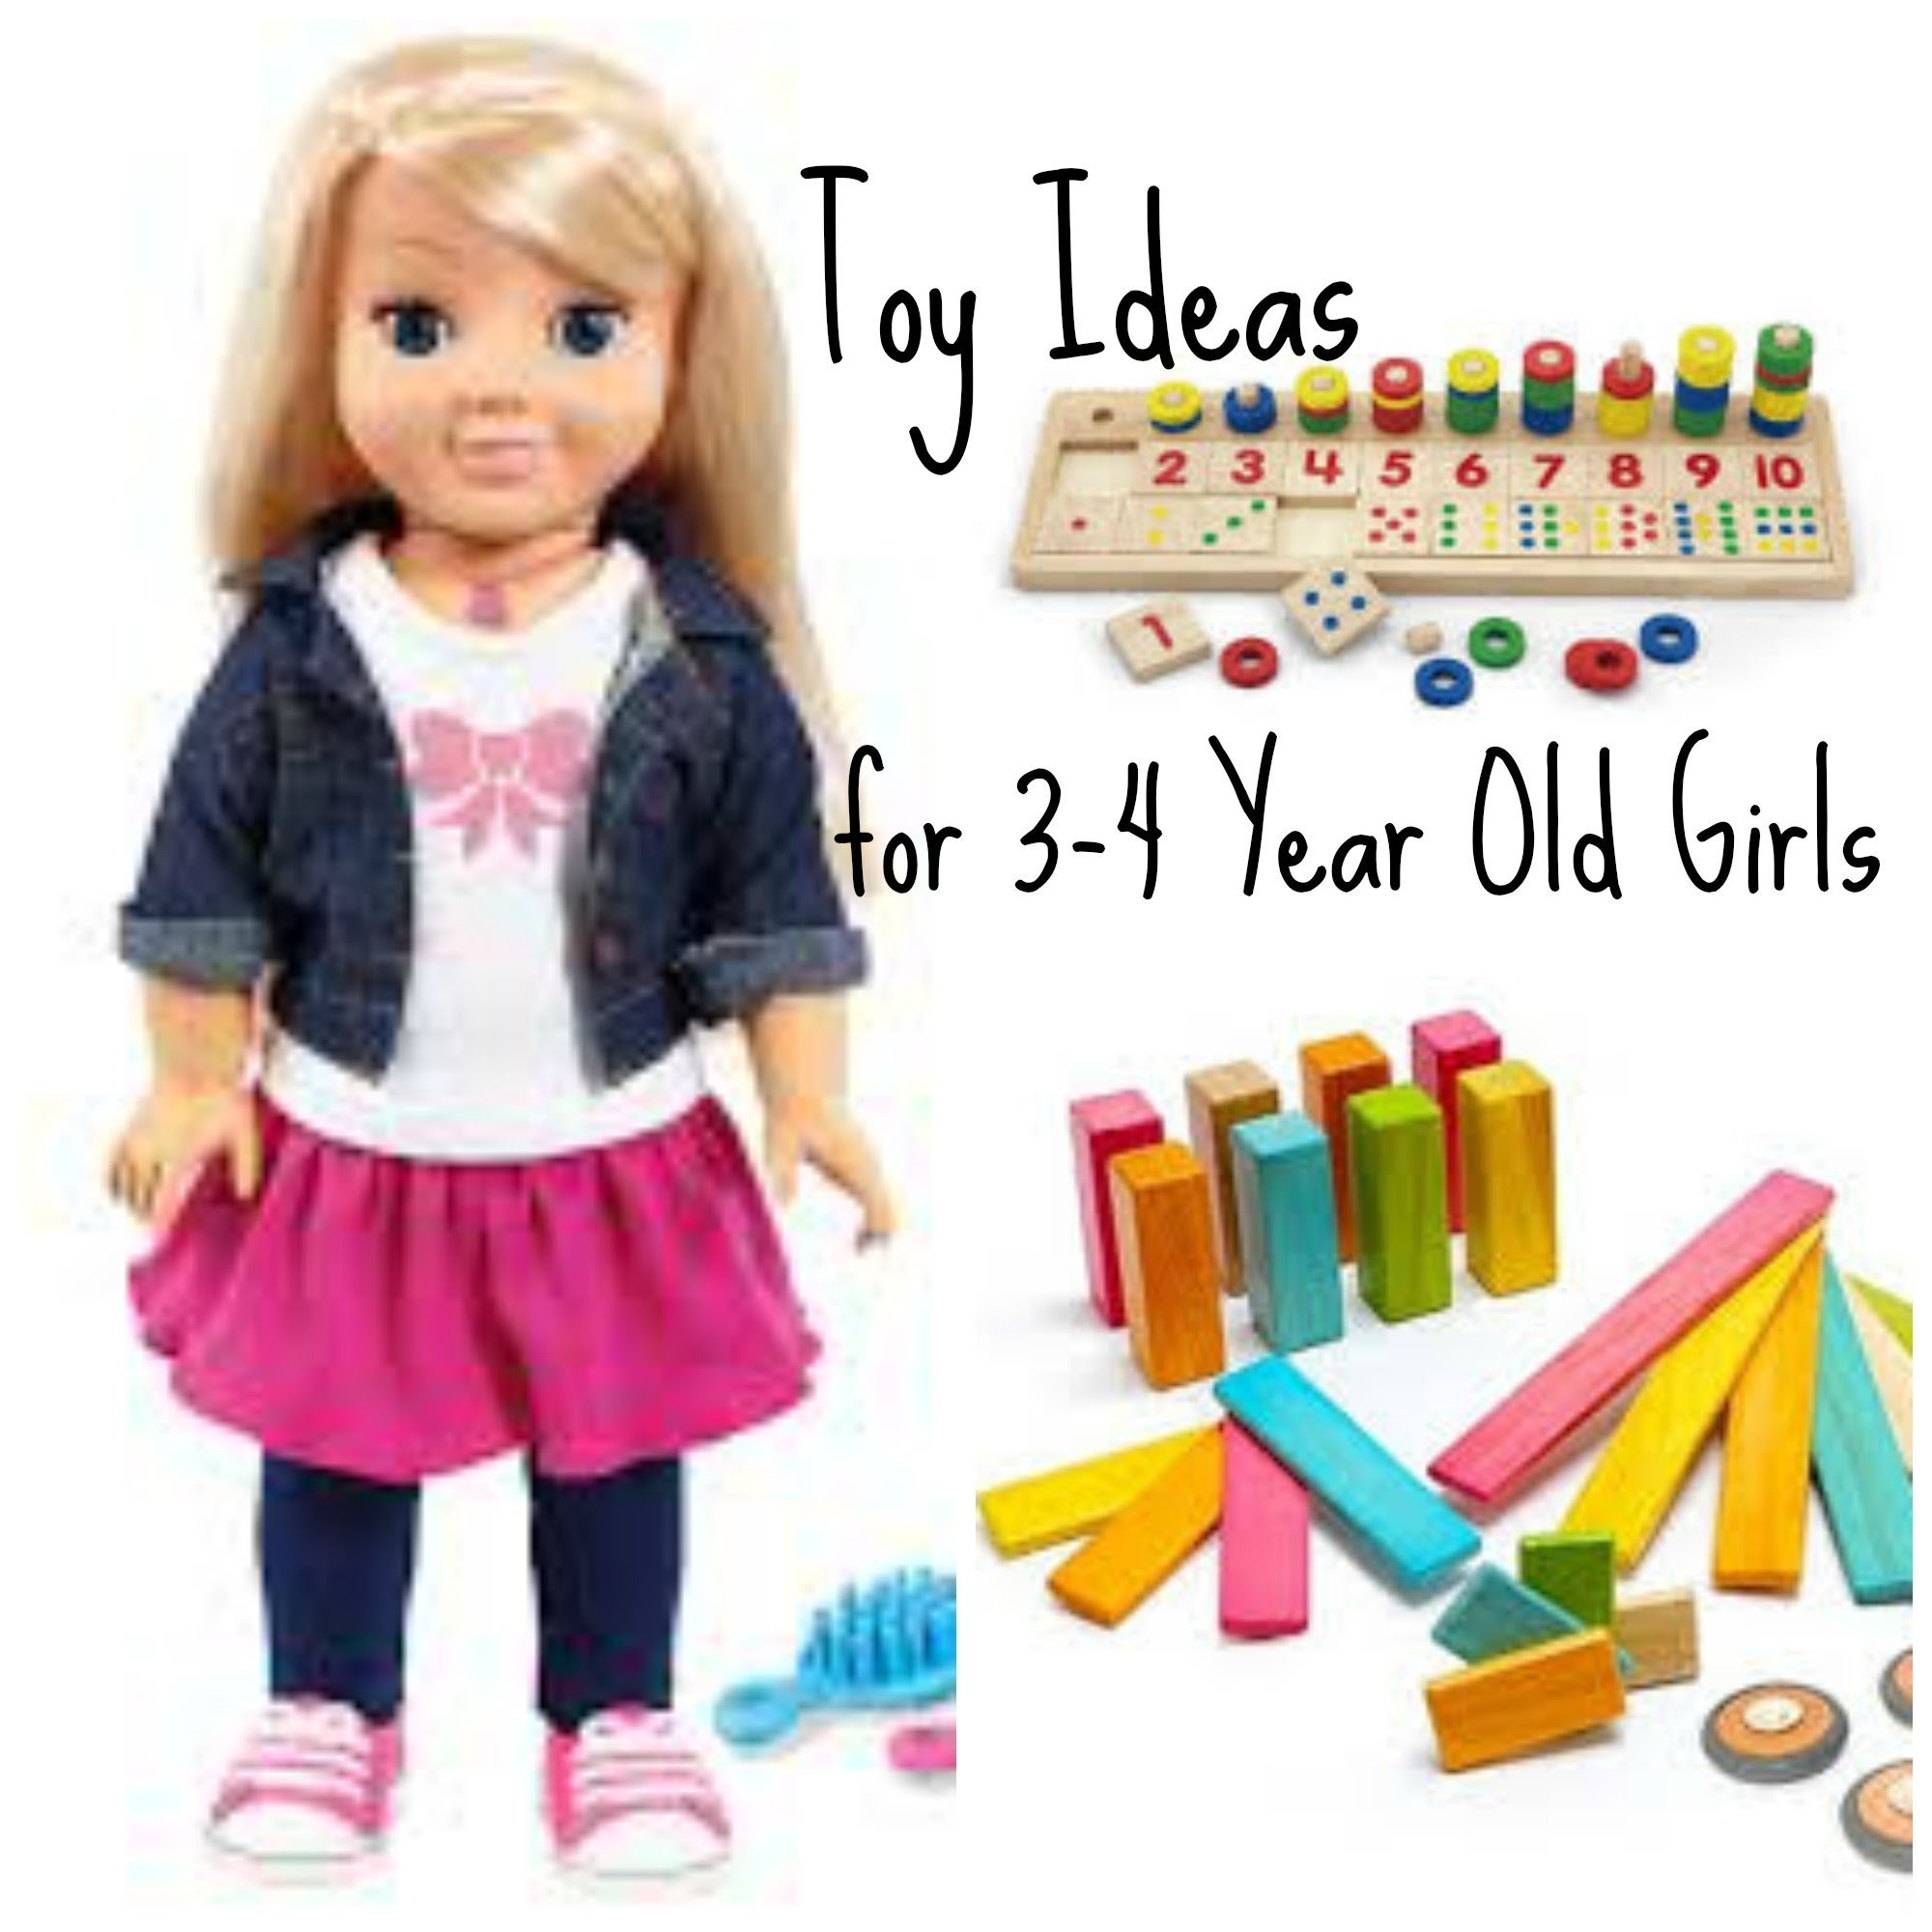 10 Famous Gift Ideas For A 3 Year Old Girl toys 3 4 years old girl all i want for christmas collab youtube 2020